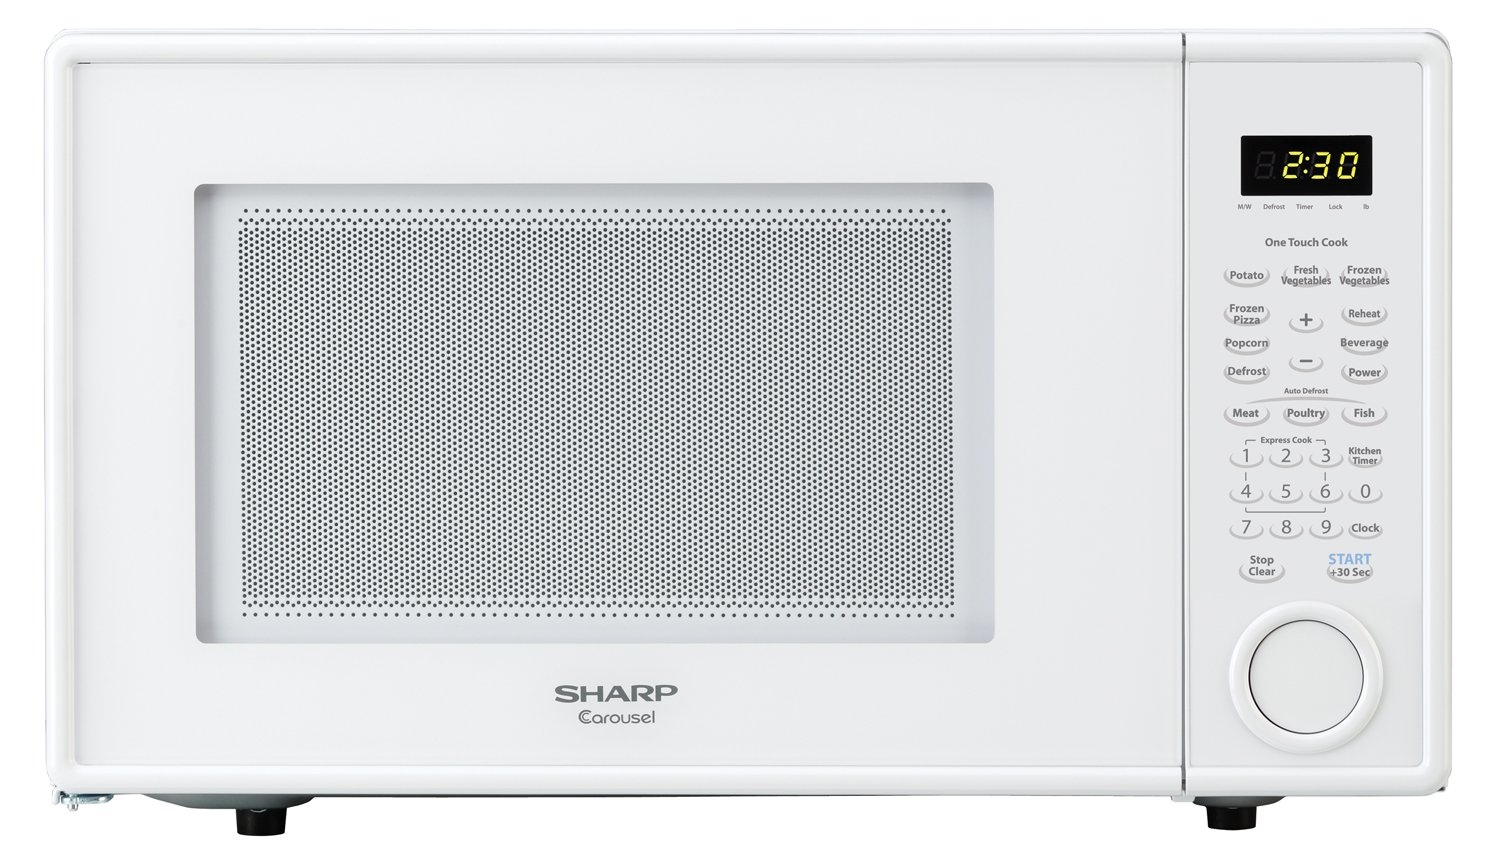 Top 10 Best Microwave Ovens (2020 Reviews & Buying Guide) 6